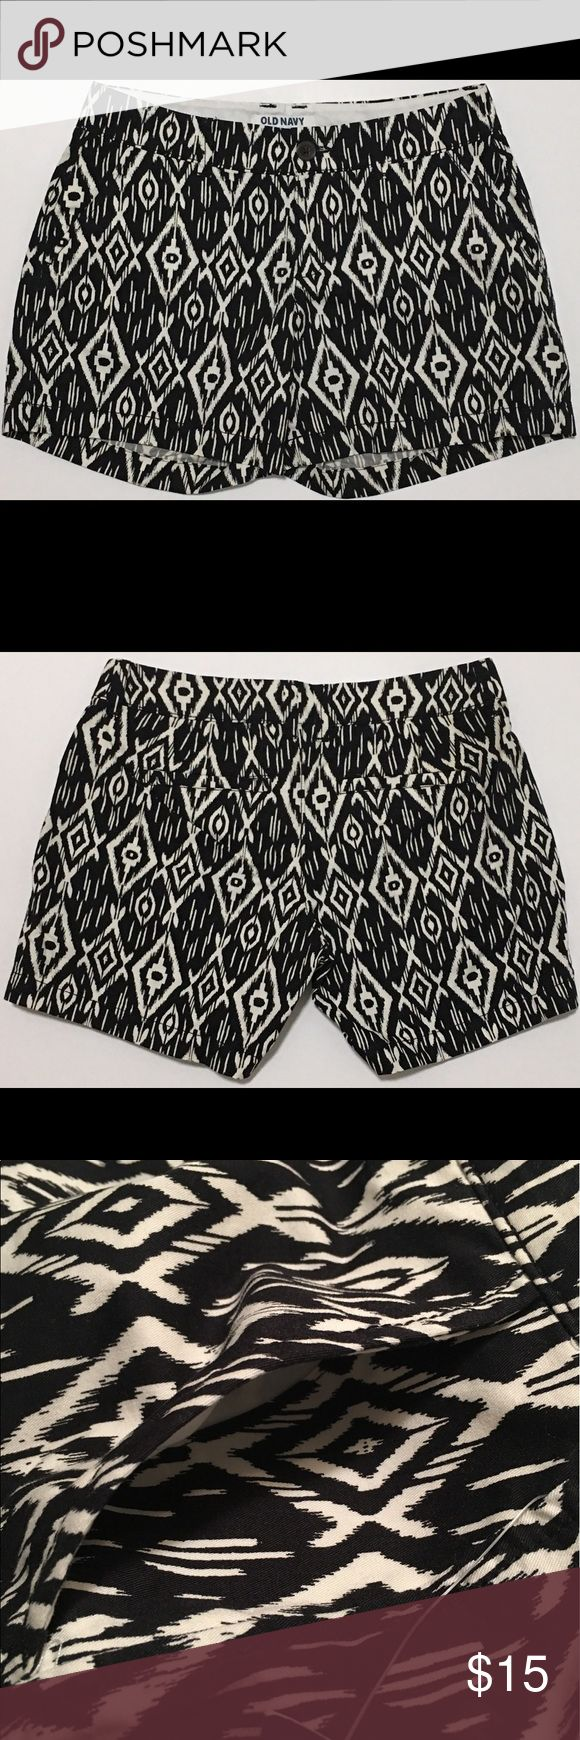 """Old Navy Short Shorts Geometric Zip Fly Button NWT! Old Navy Women's Shorts: Geometric Print. Zip Fly. Pockets. Flat Front. Short, Shorts. Made of: 100% Cotton. Waist: 29"""". Outerseam: 12.25"""". Rise: 7.75"""" *Measurements are approximate* Old Navy Shorts"""